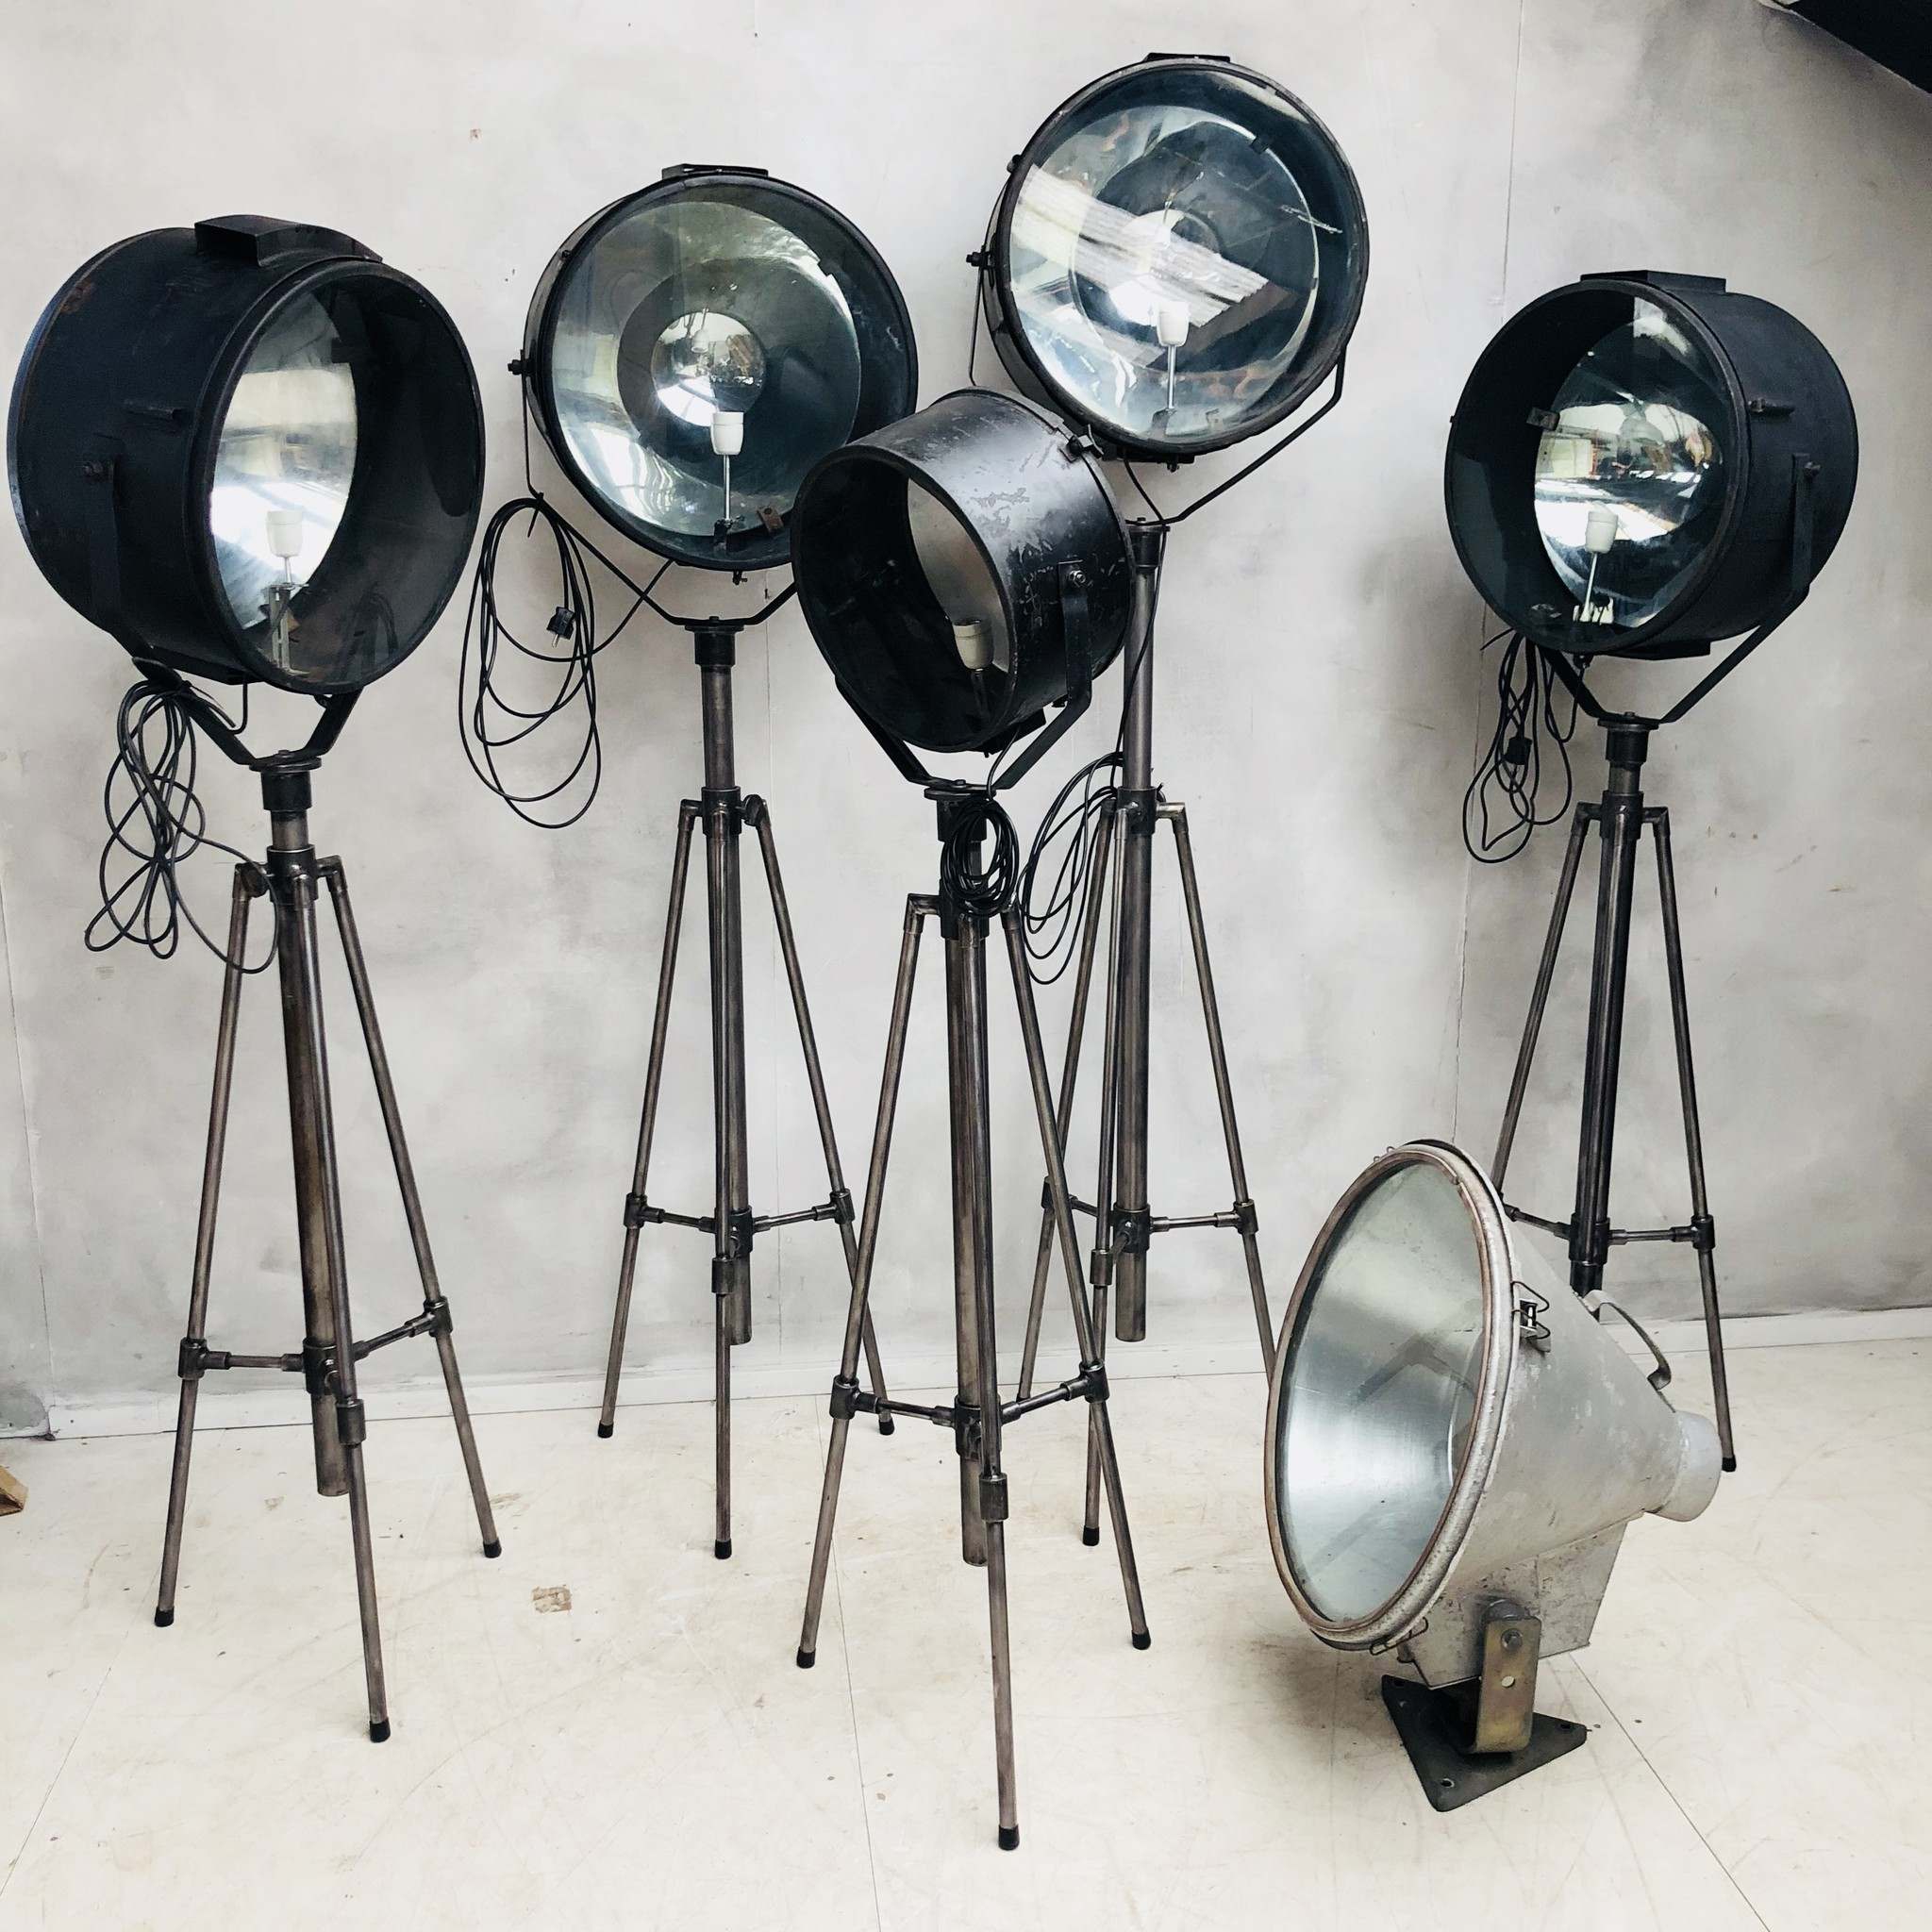 Spiksplinternieuw Vintage theater lamp - Oldwood - De woonwinkel - Oldwood - De UC-11